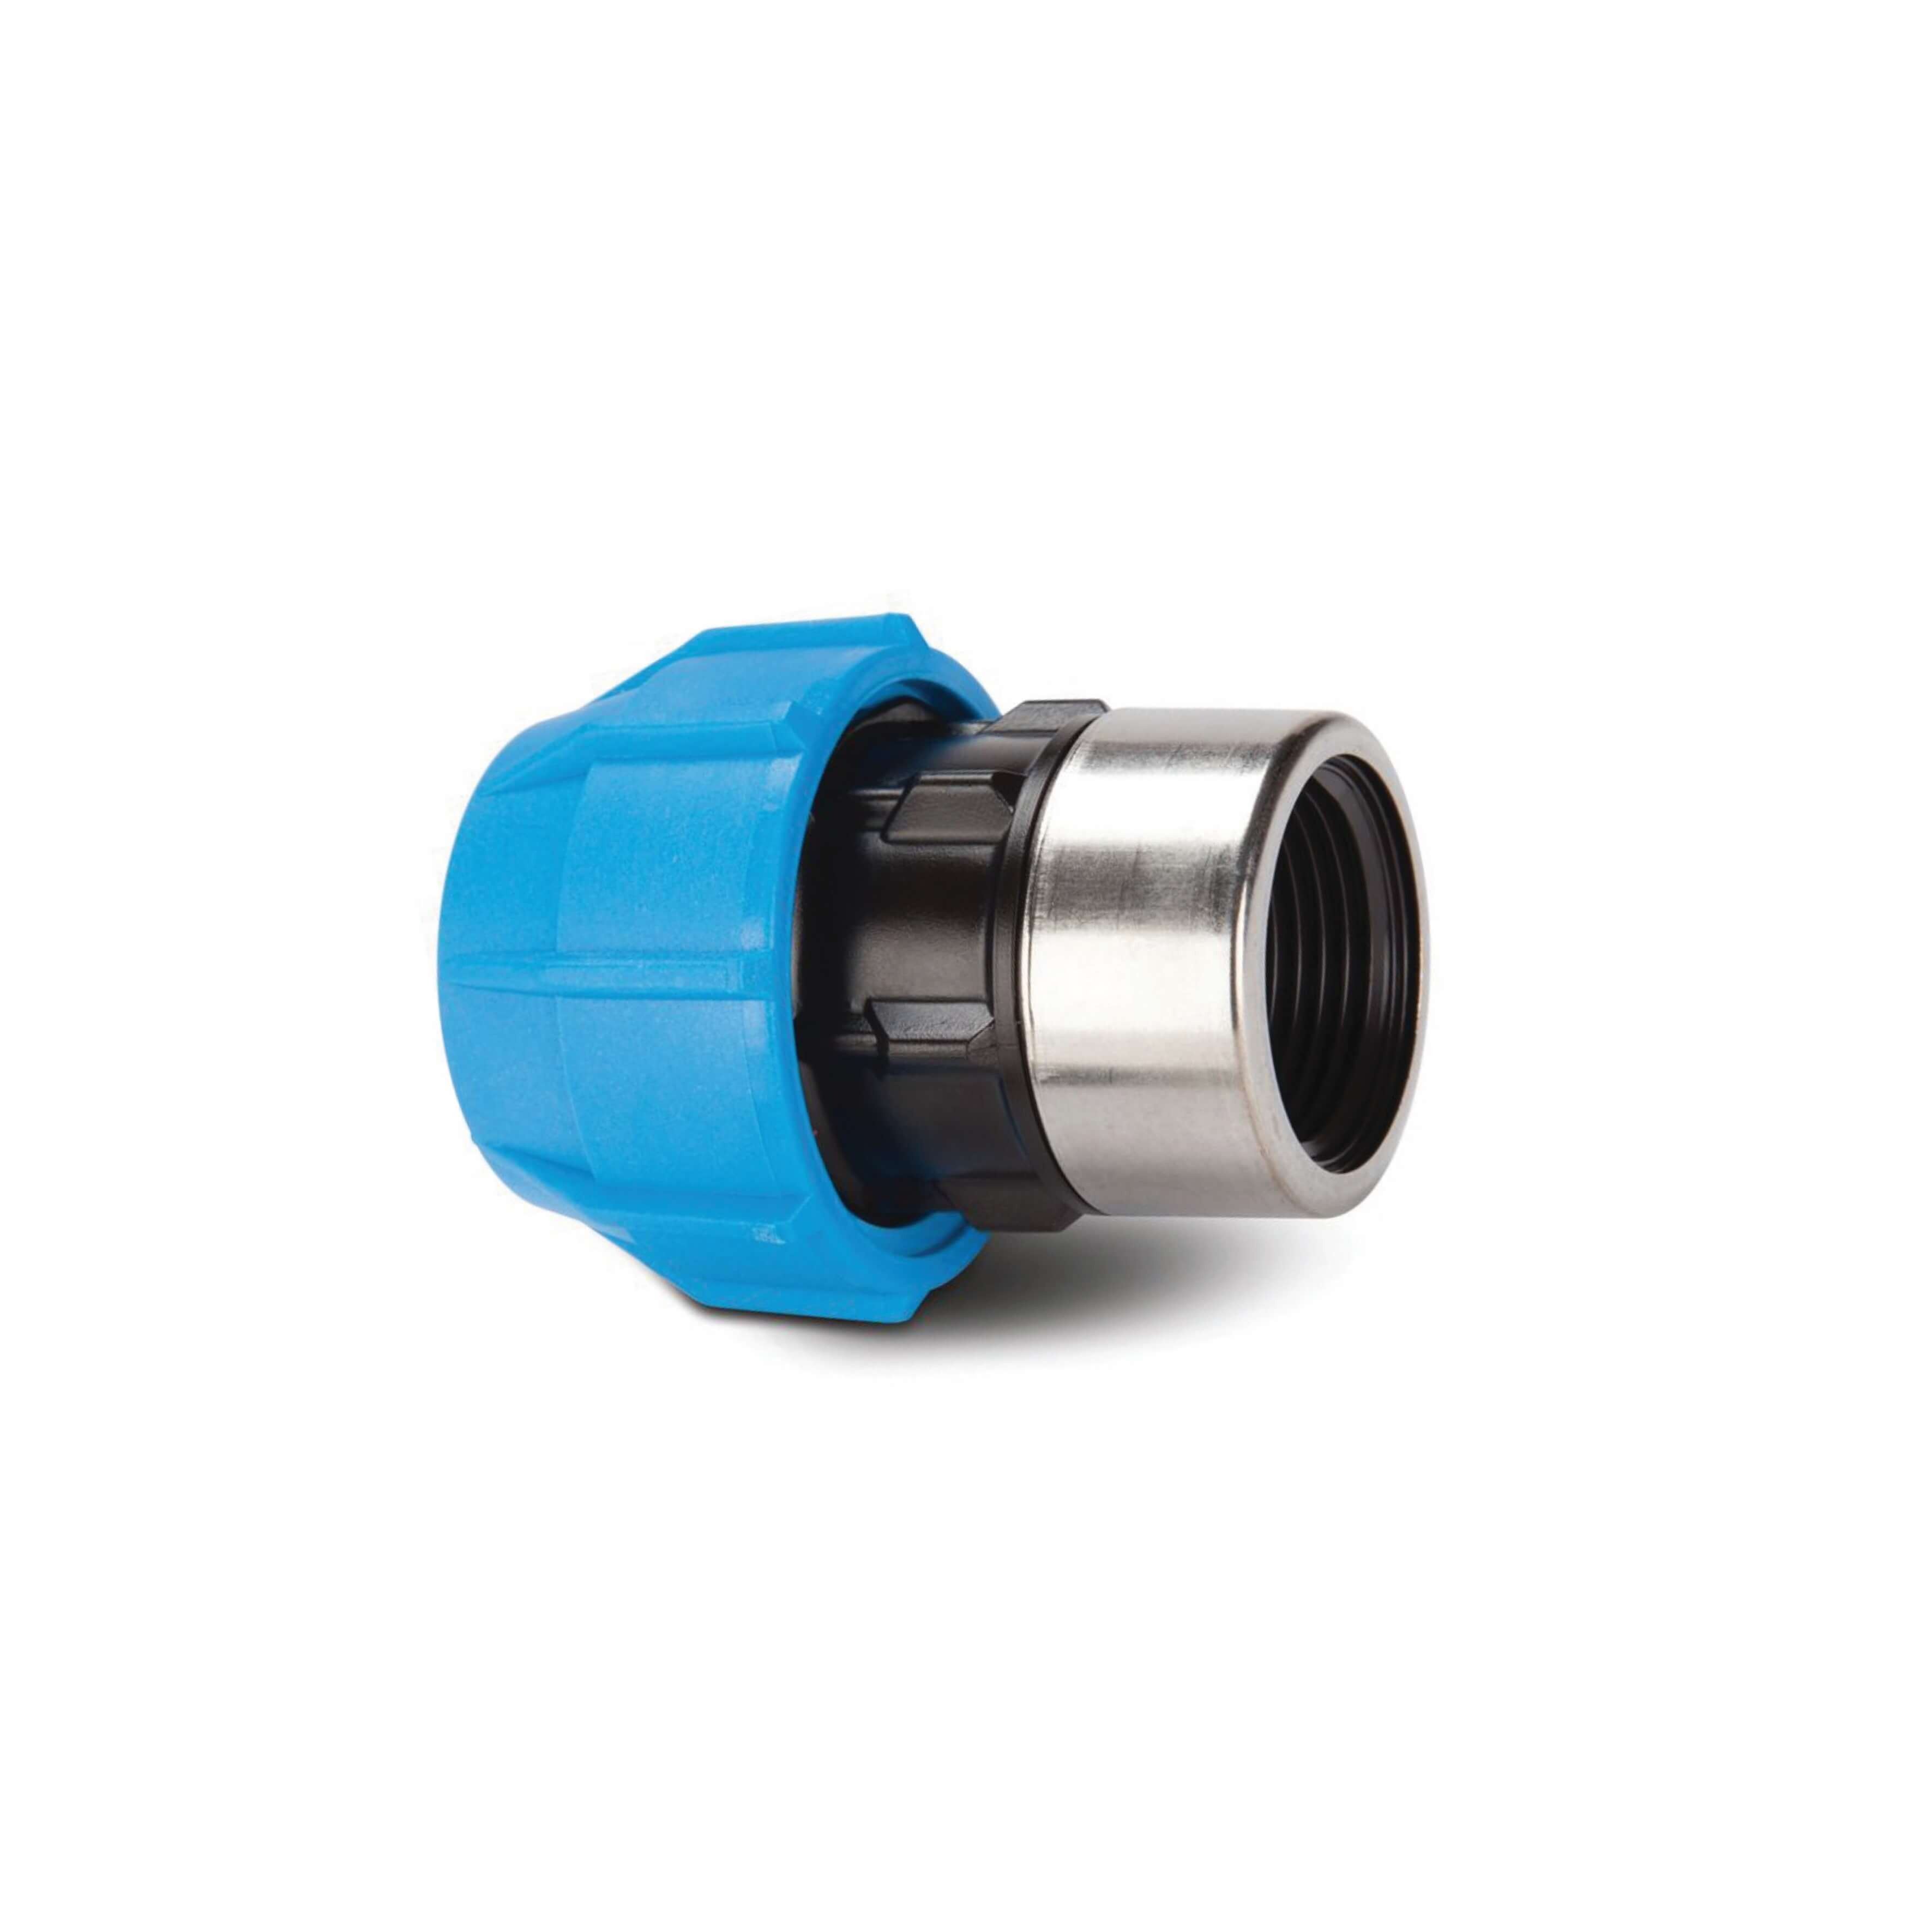 Polyfast 25mm Adapter 4032512